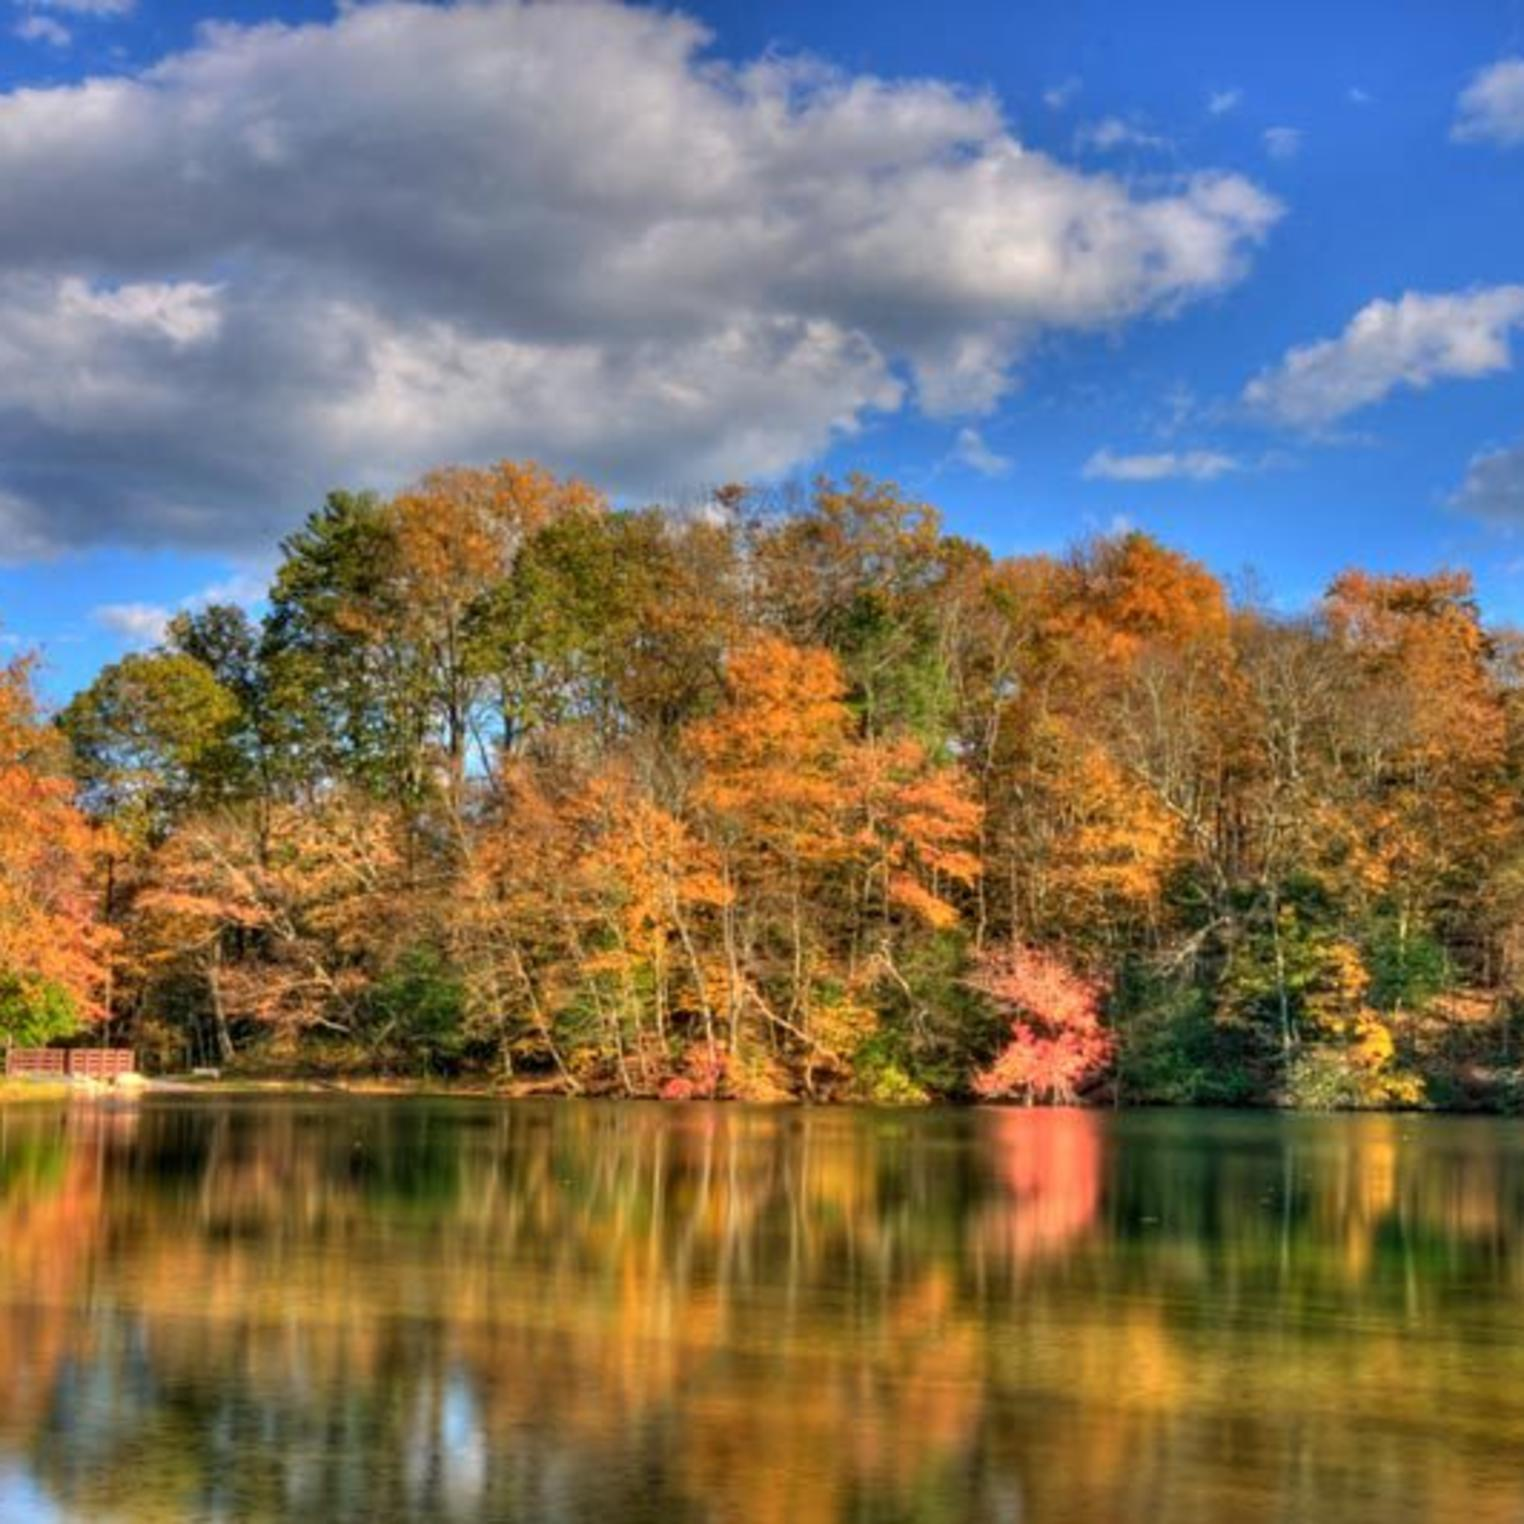 Autumn at Fuller Lake